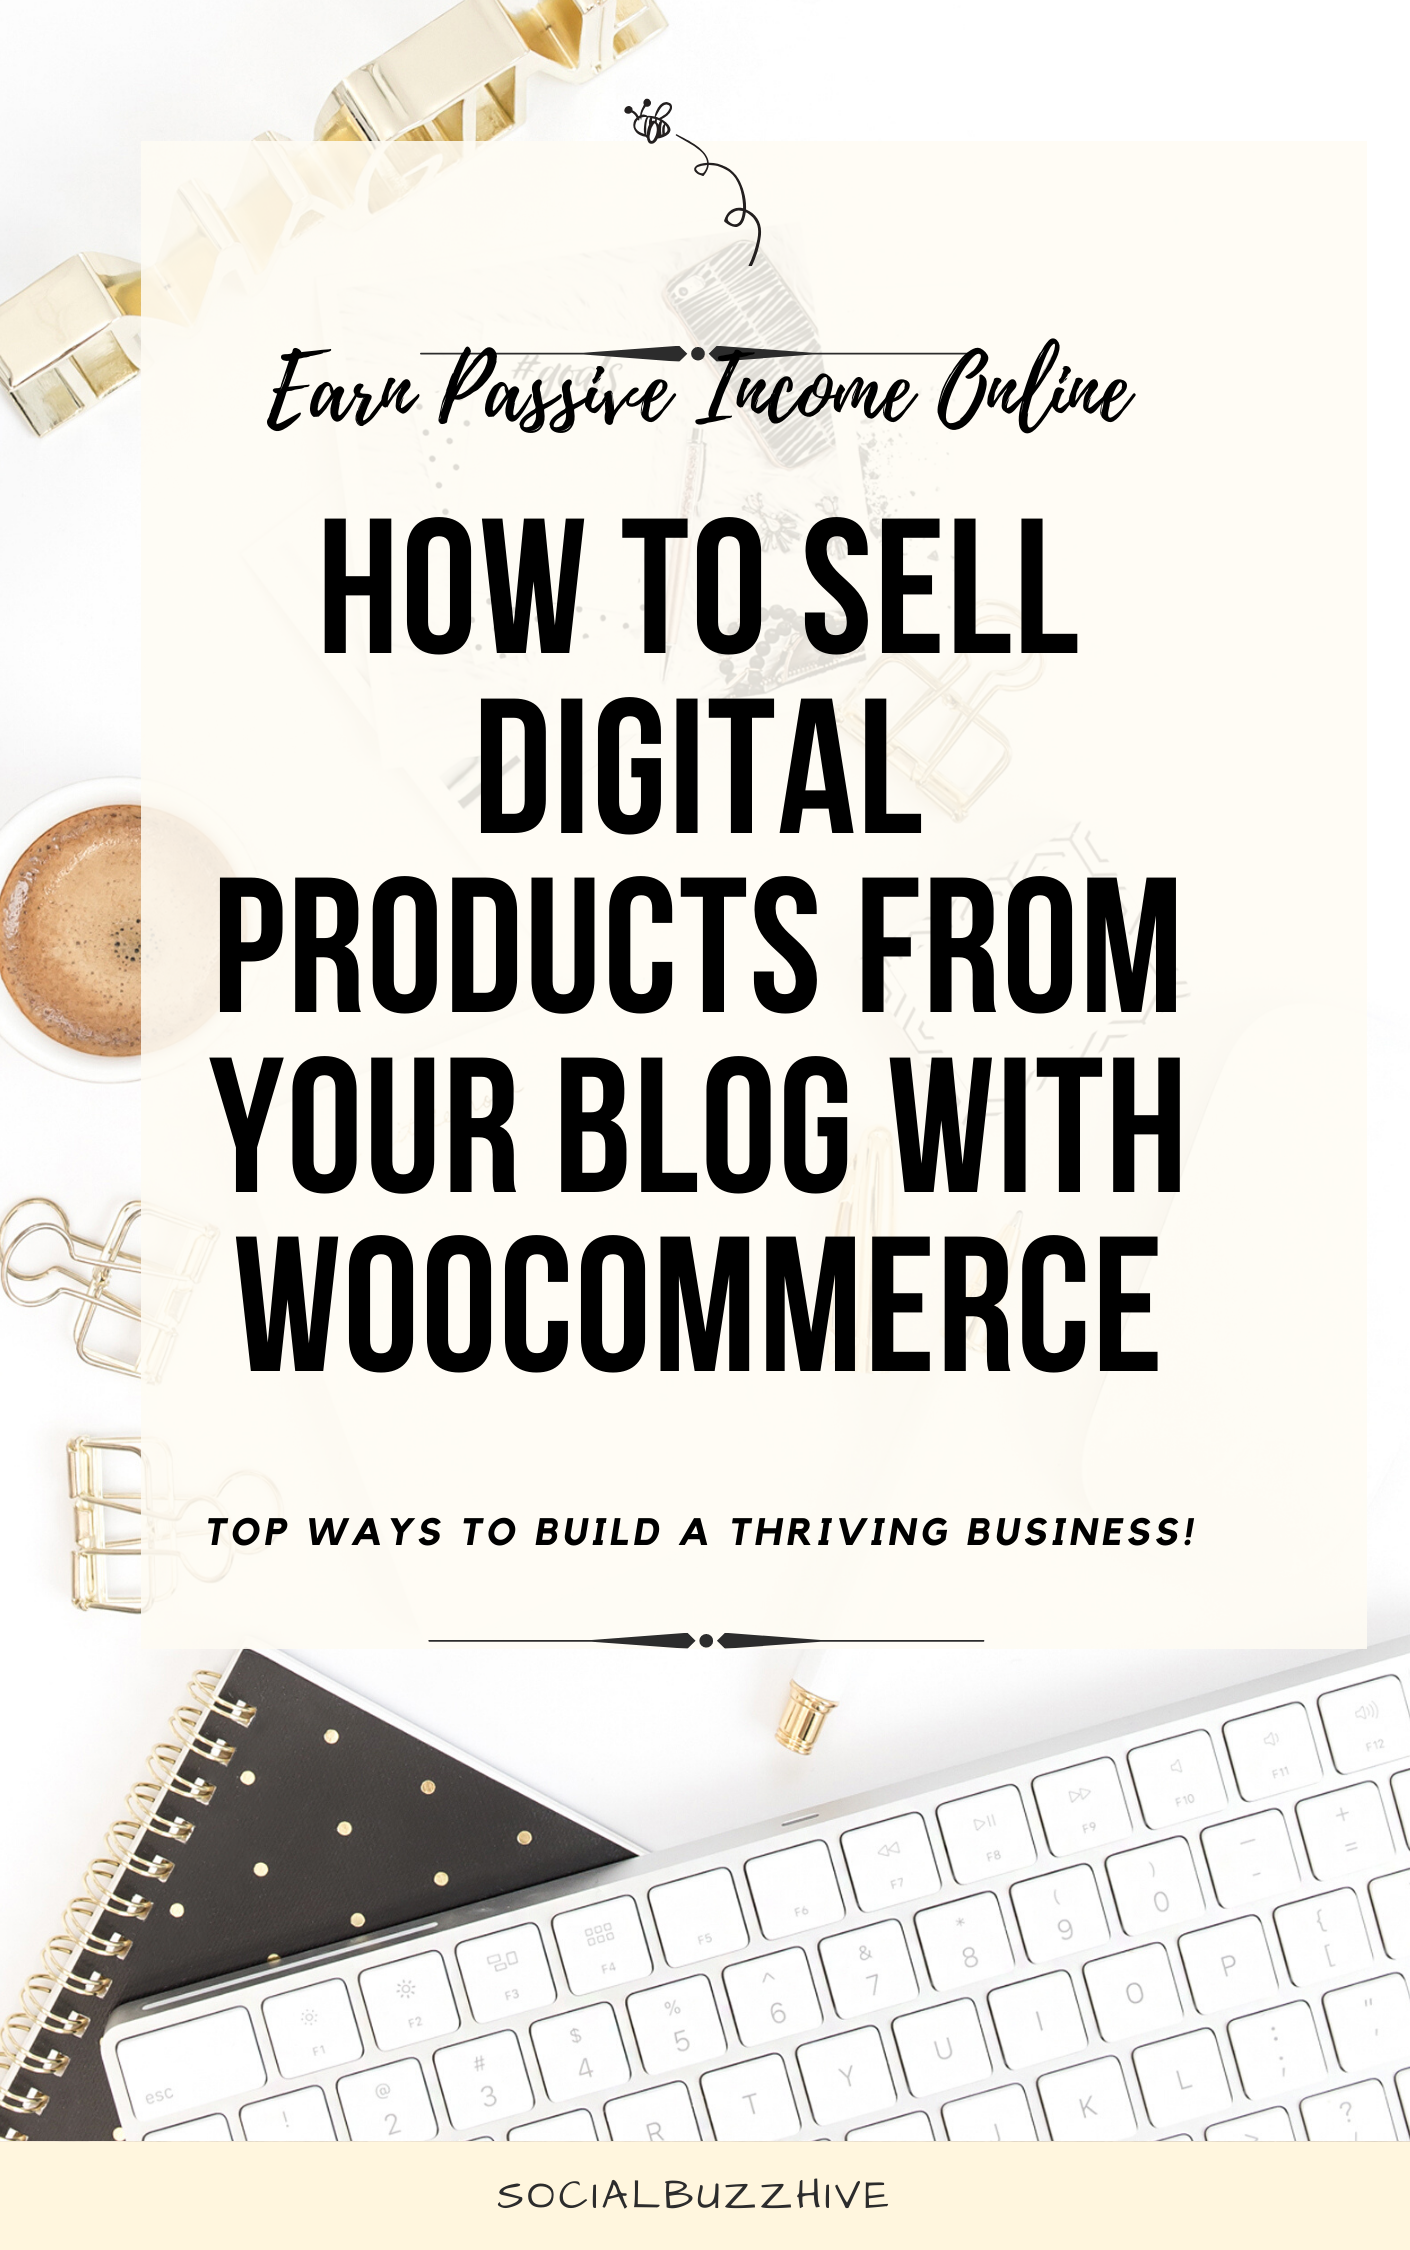 how to sell digital products with woocommerce